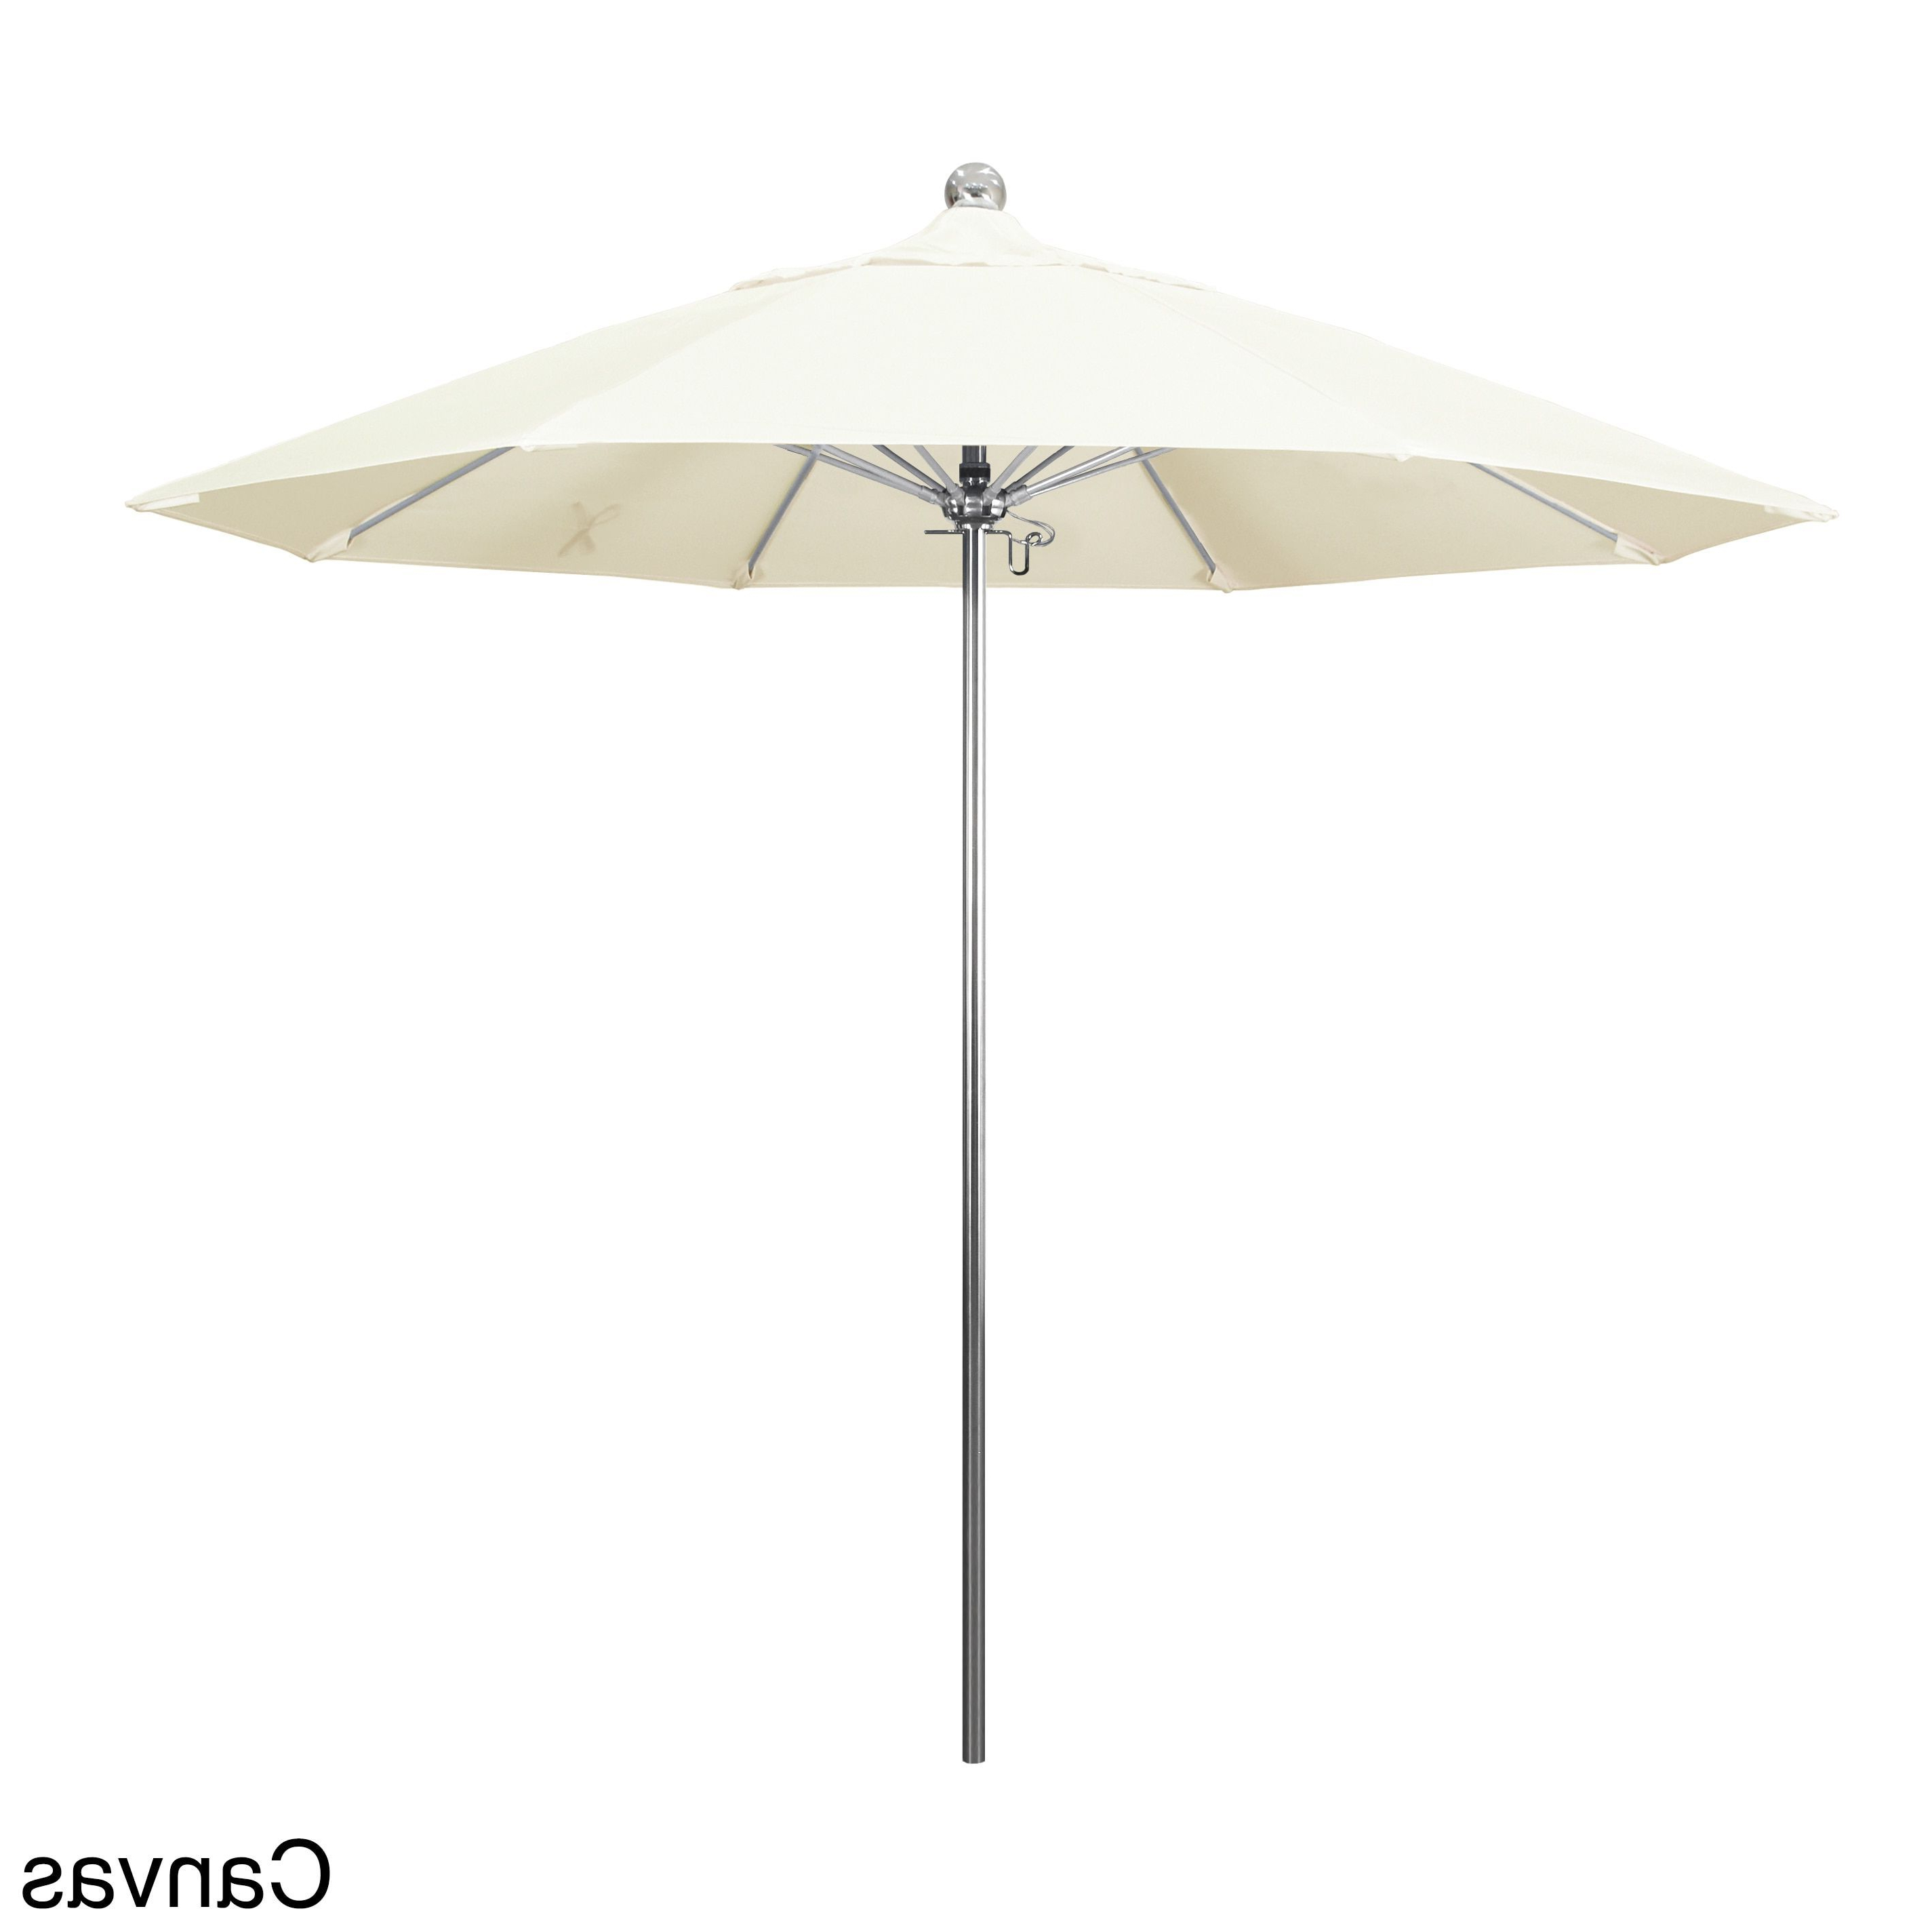 Most Recently Released California Umbrella 9 Foot Stainless Steel Market Umbrella With In Mablethorpe Cantilever Umbrellas (View 15 of 20)